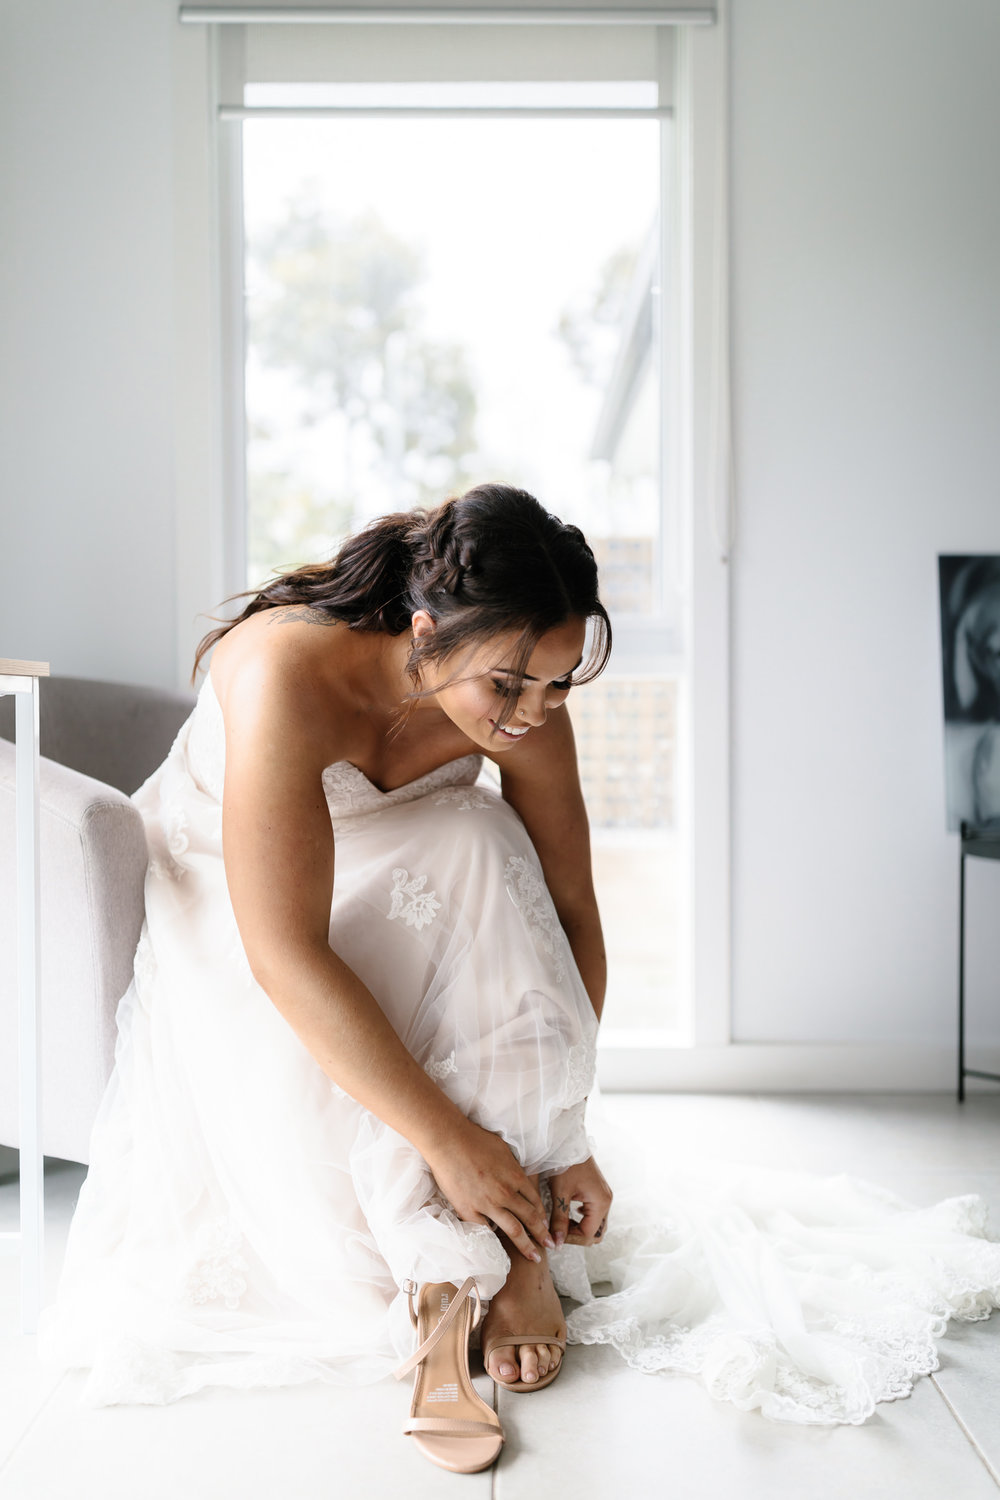 DIY wedding, final touches, bridal prep, excitement, getting ready, Yarra valley Weddings, Melbourne Weddings, Destination Weddings, Wedding day ready, hello may, lace,